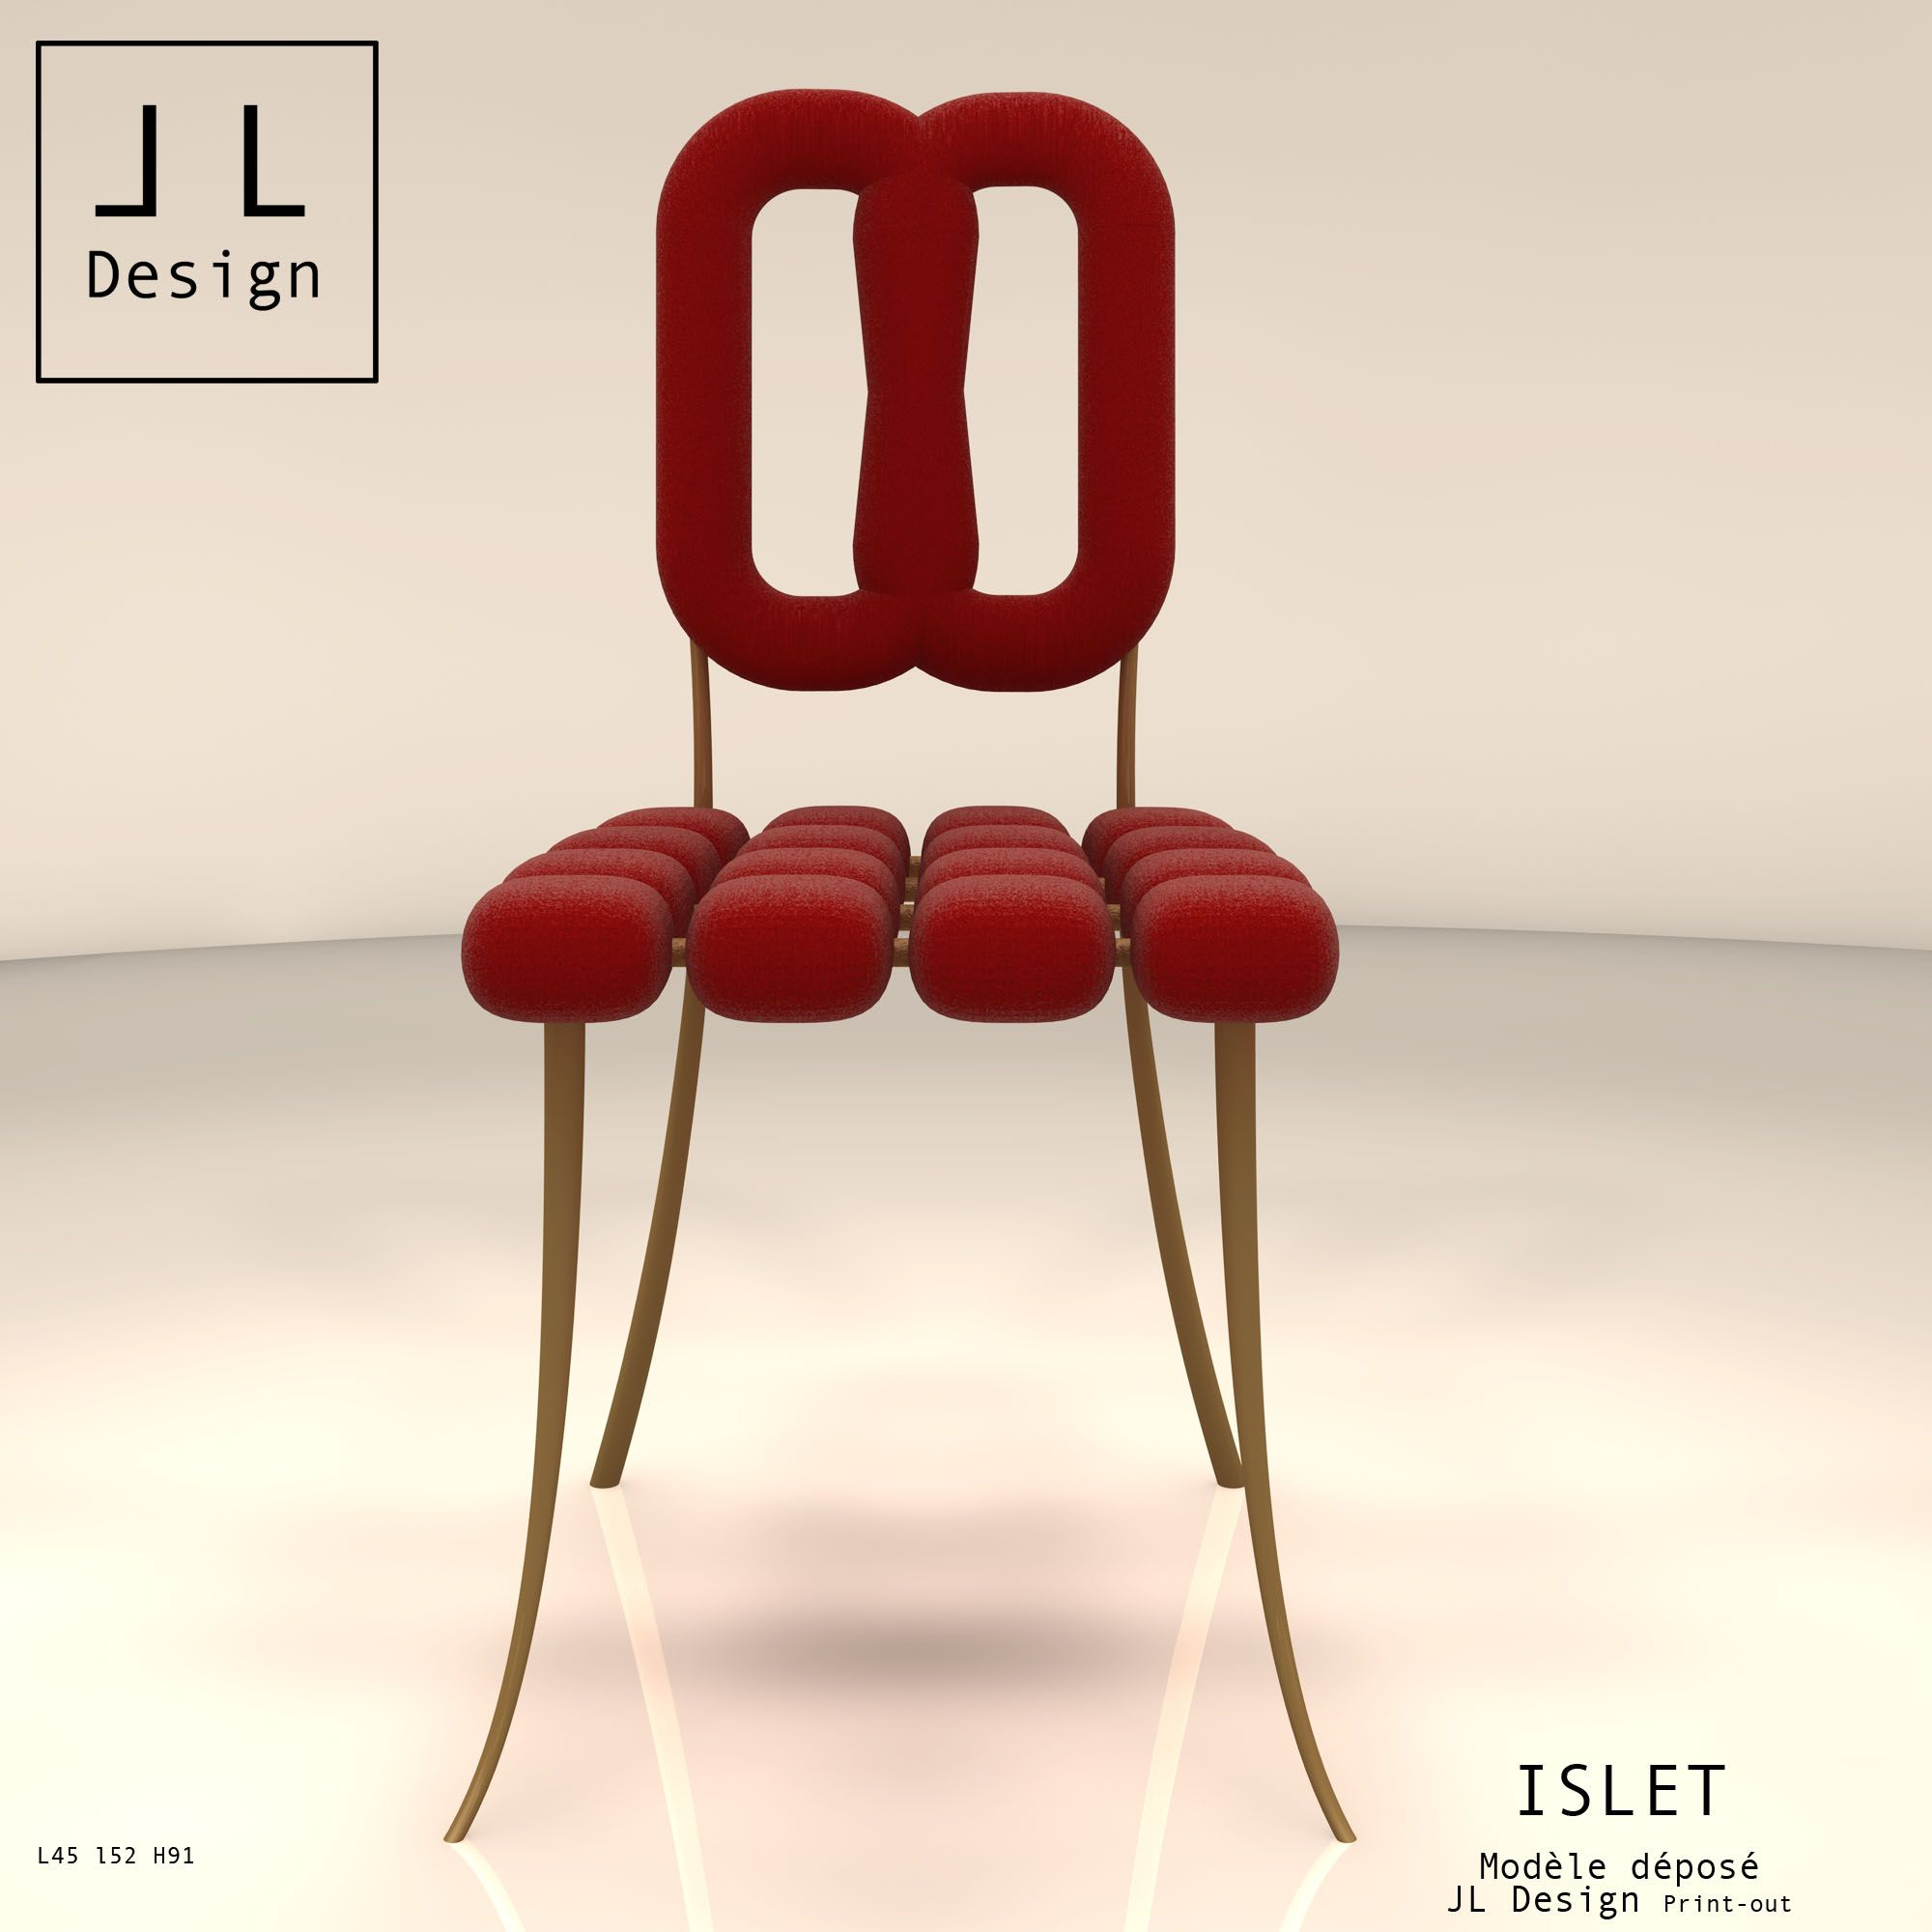 Its legs soar up with grace and hold up the independent islets (little iland) modules of the base seat. Those islets shape the base seat with softness. The extention of its hind legs are supporting its ergonomic back.